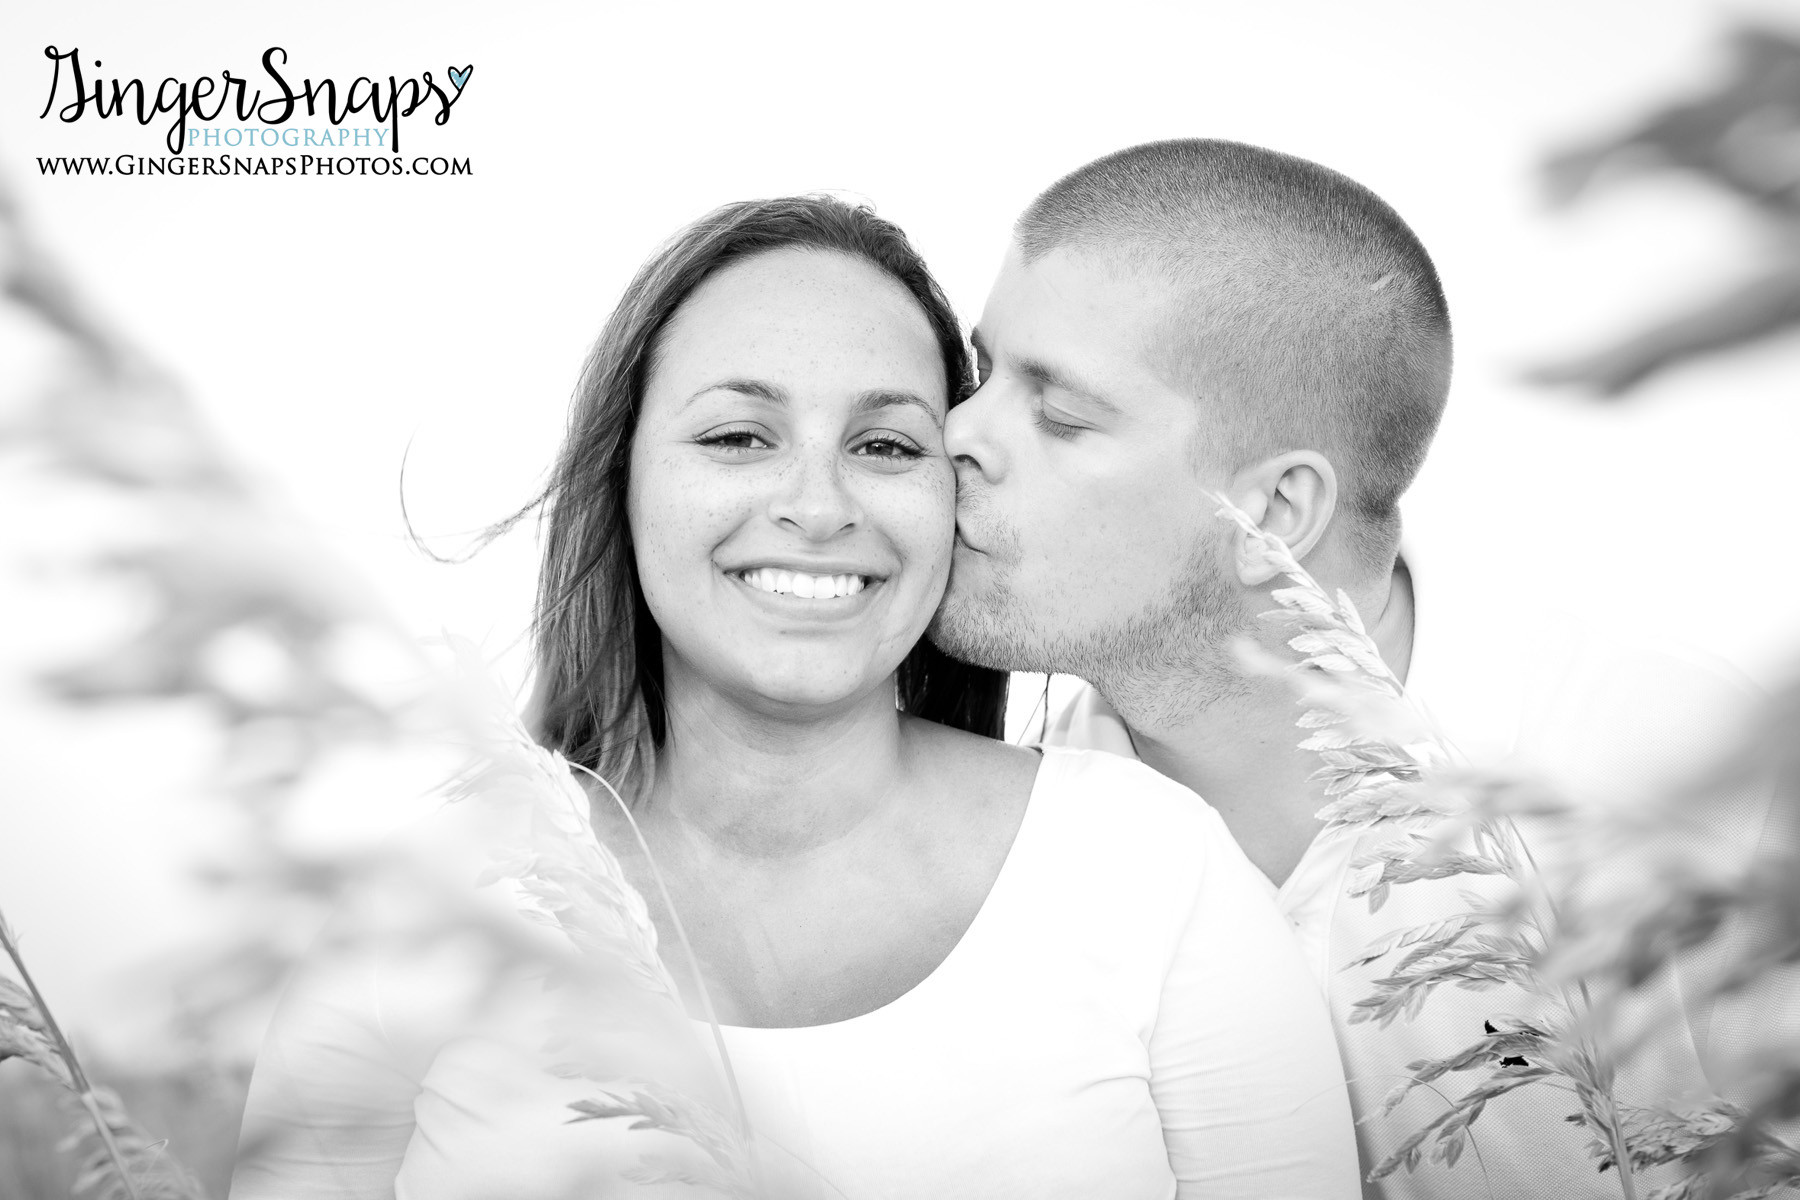 GingerSnaps Photography - 62